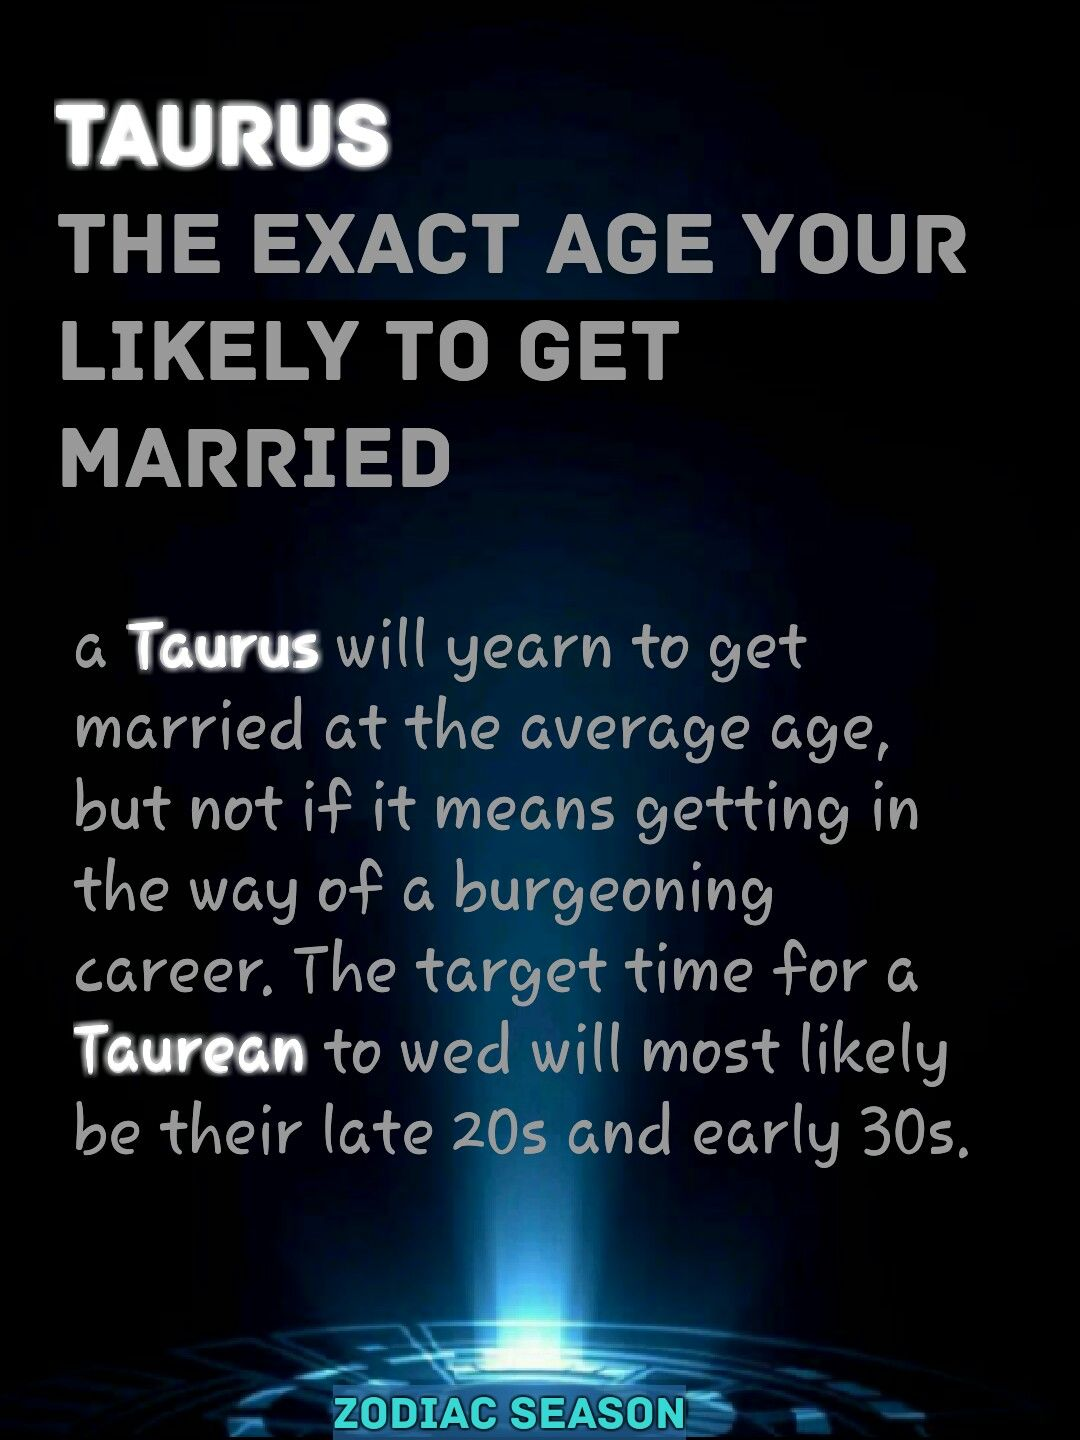 a Taurus will yearn to get married at the average age | Taurus